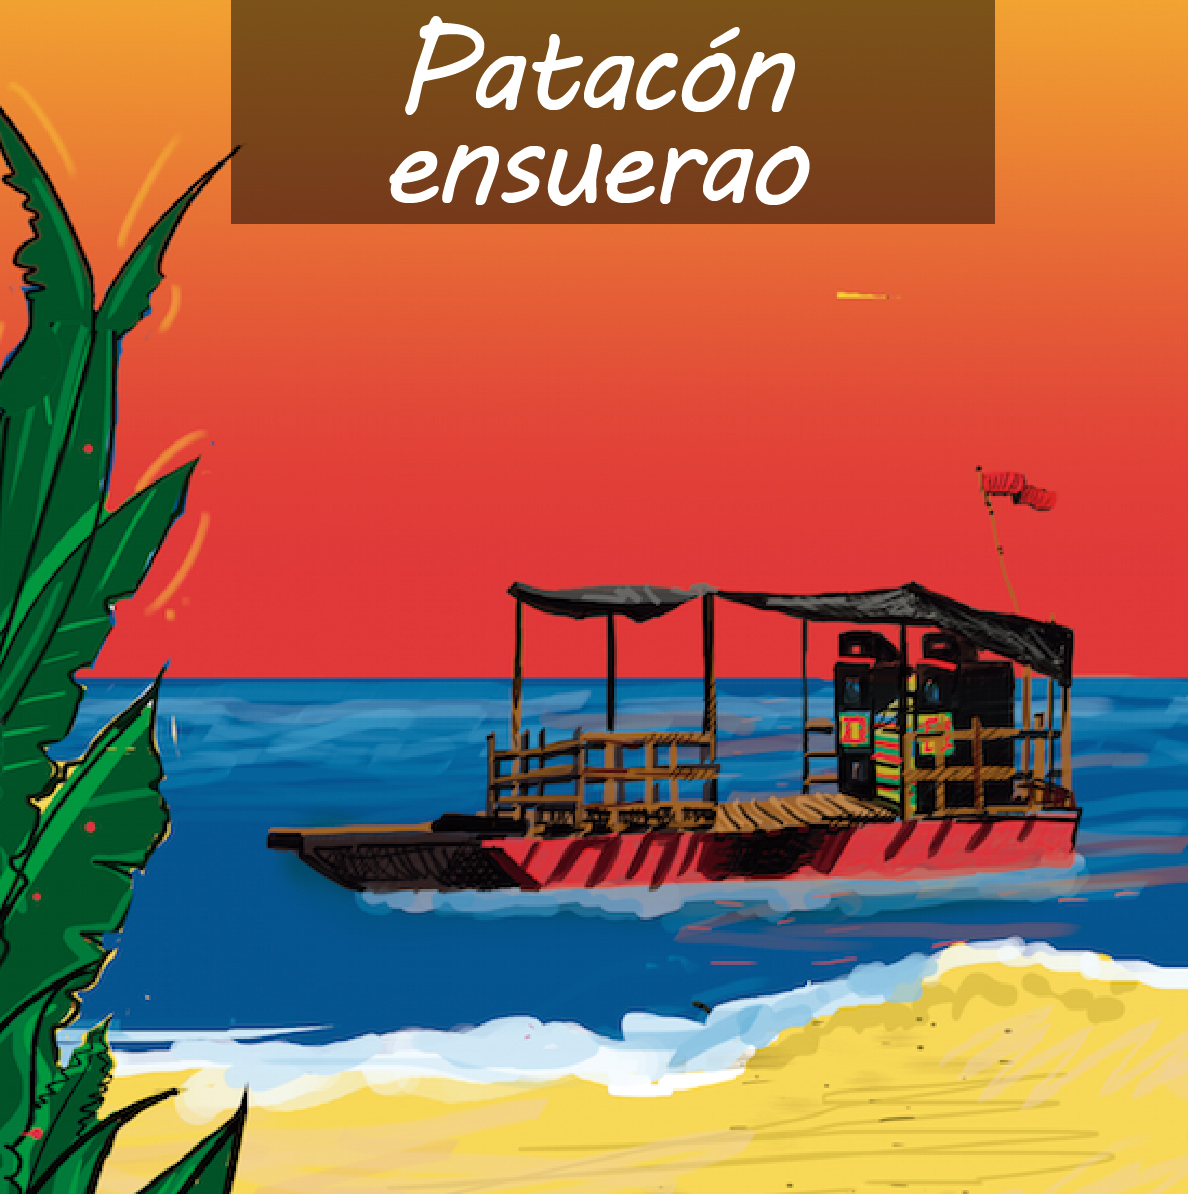 patacon ensuerao